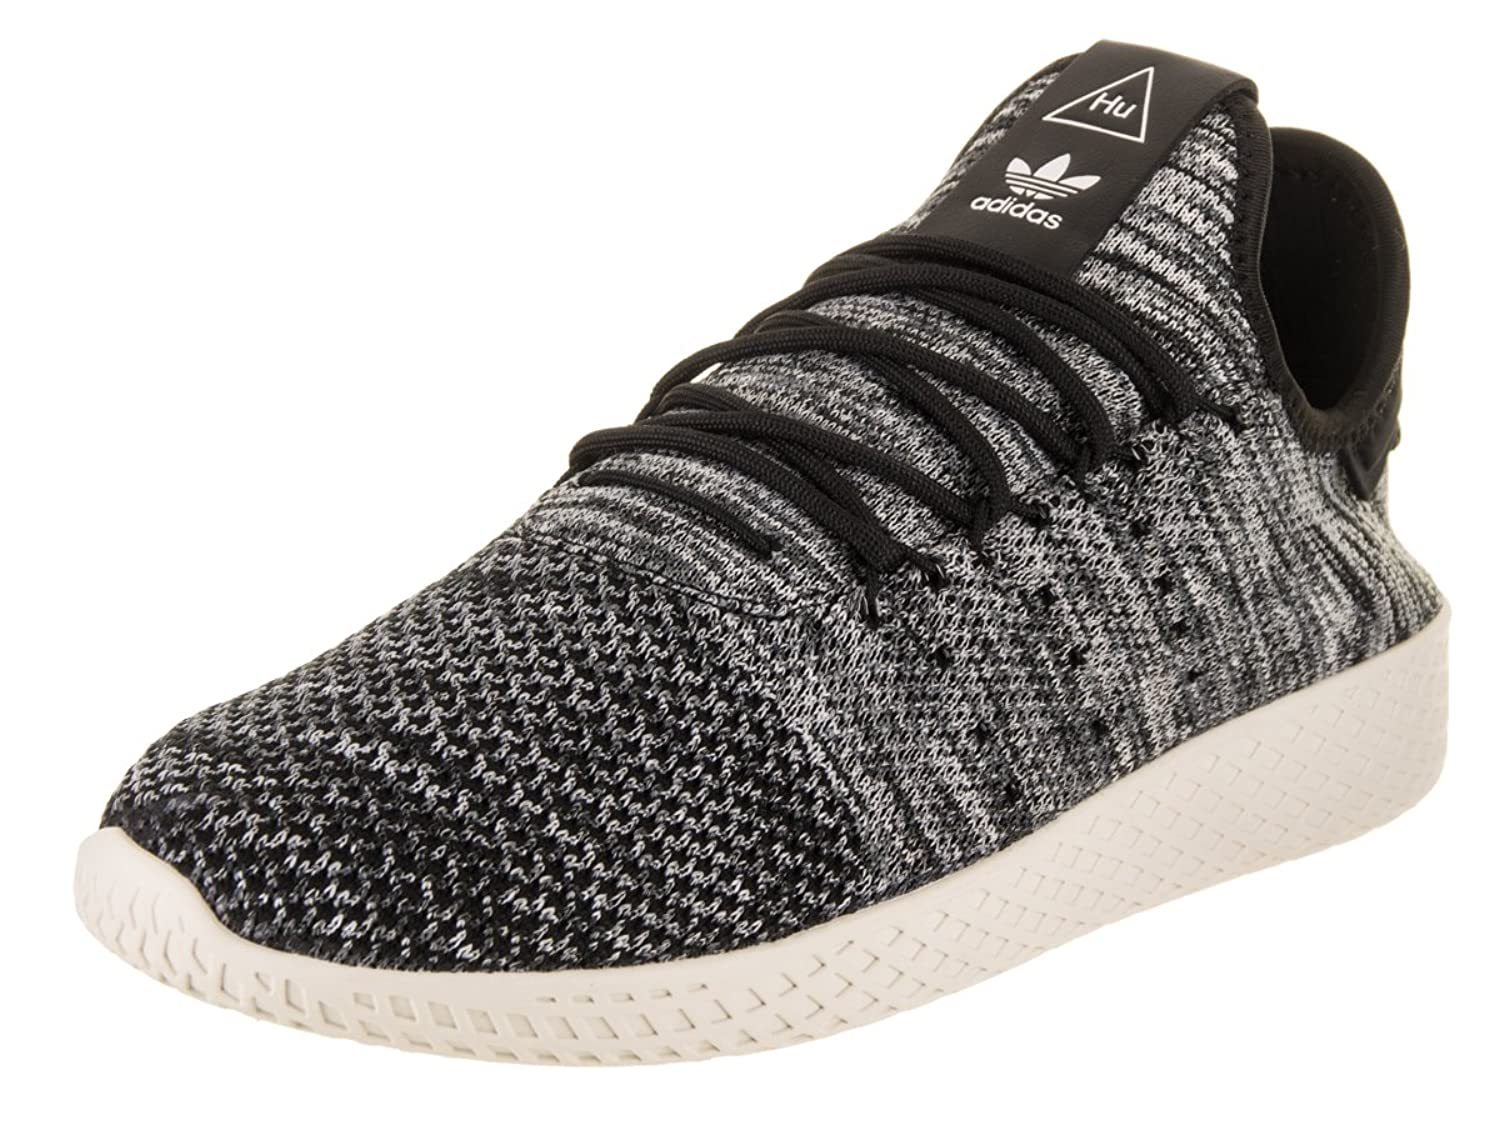 adidas Originals Pharrell Williams Tennis HU Pimeknit Shoe Men\'s Casual 13 Chalk White-Core Black-Cloud White